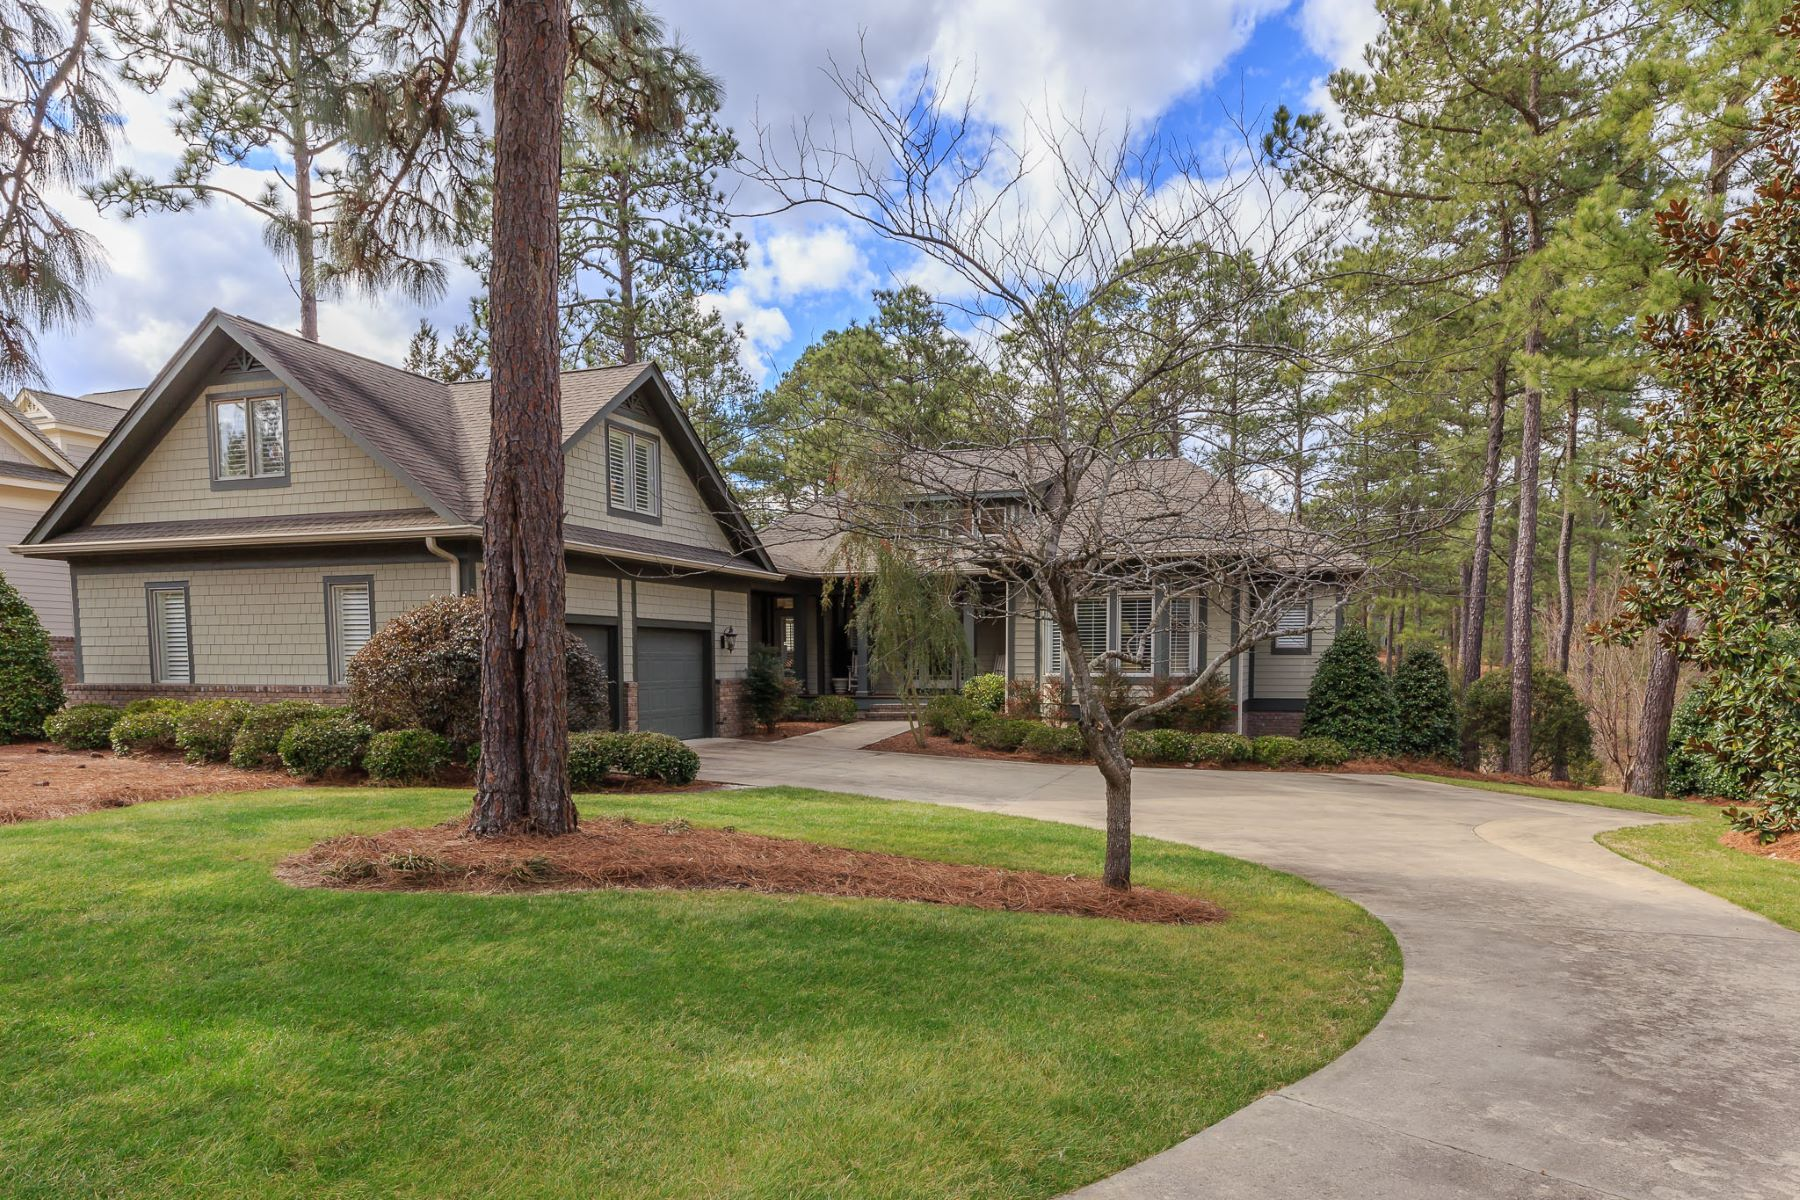 Single Family Homes for Active at Sophisticated Golf Cottage in Forest Creek 422 Meyer Farm Dr. Pinehurst, North Carolina 28374 United States